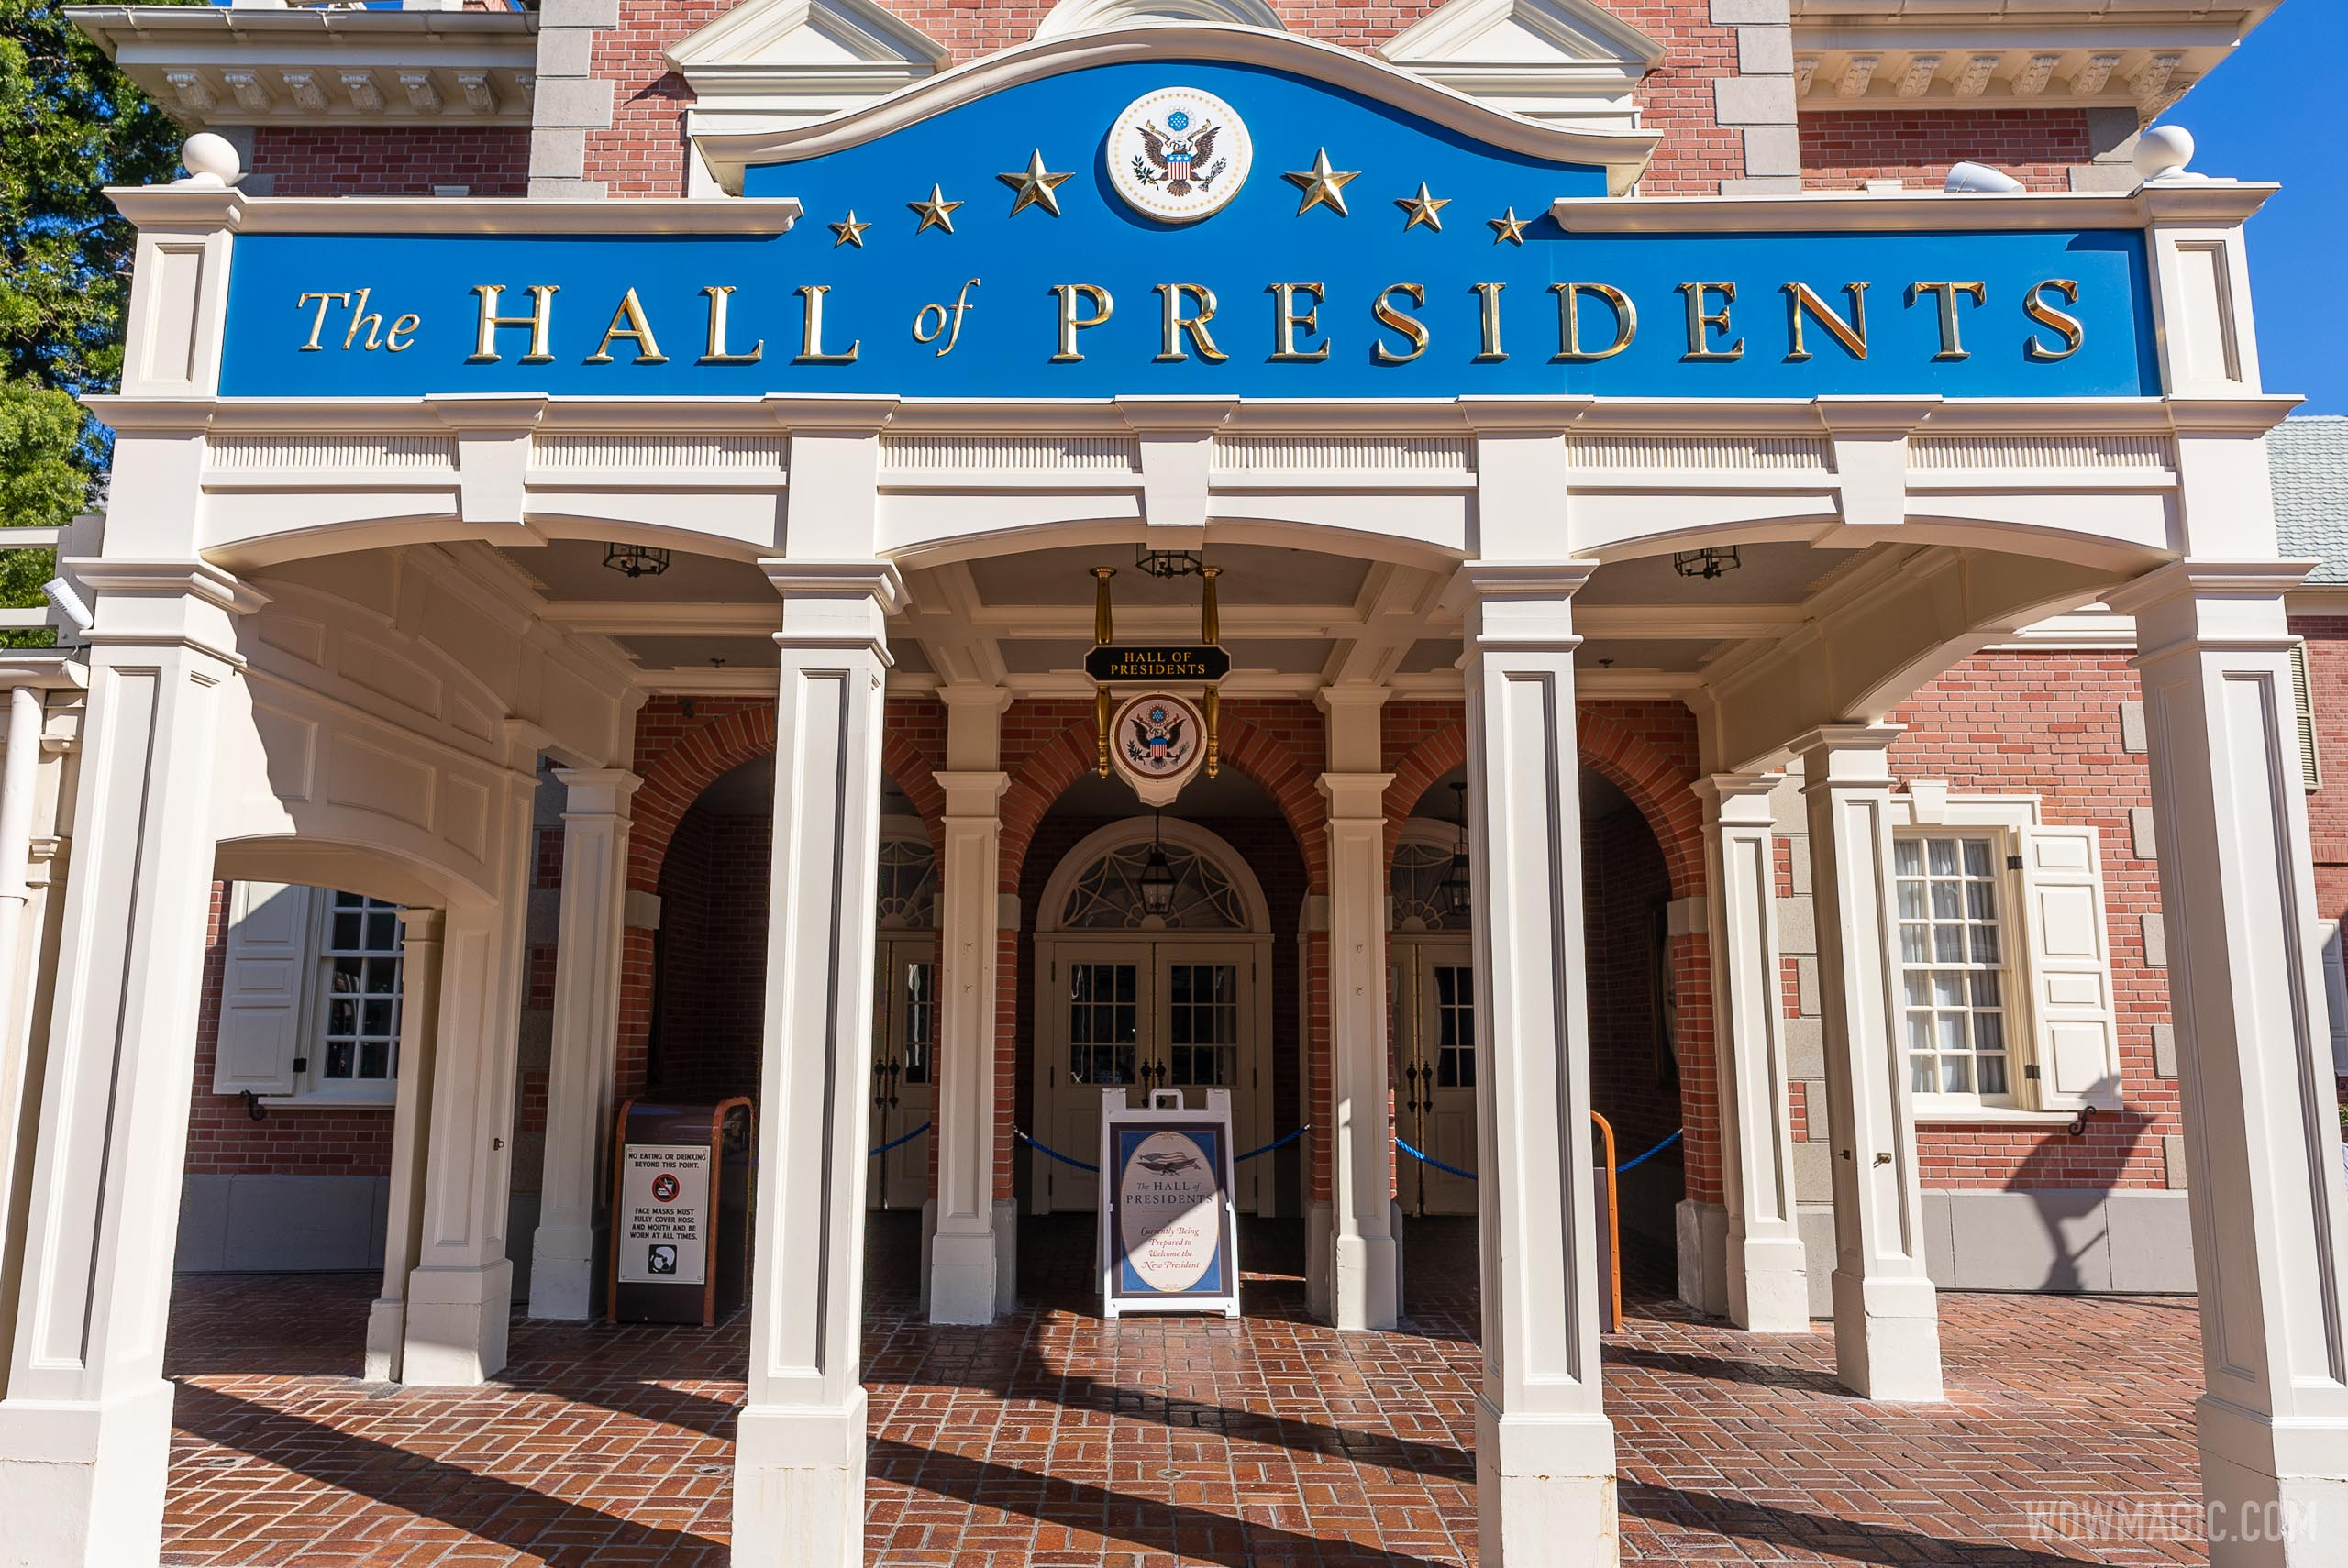 The Hall of Presidents closed for refurbishment - January 2021